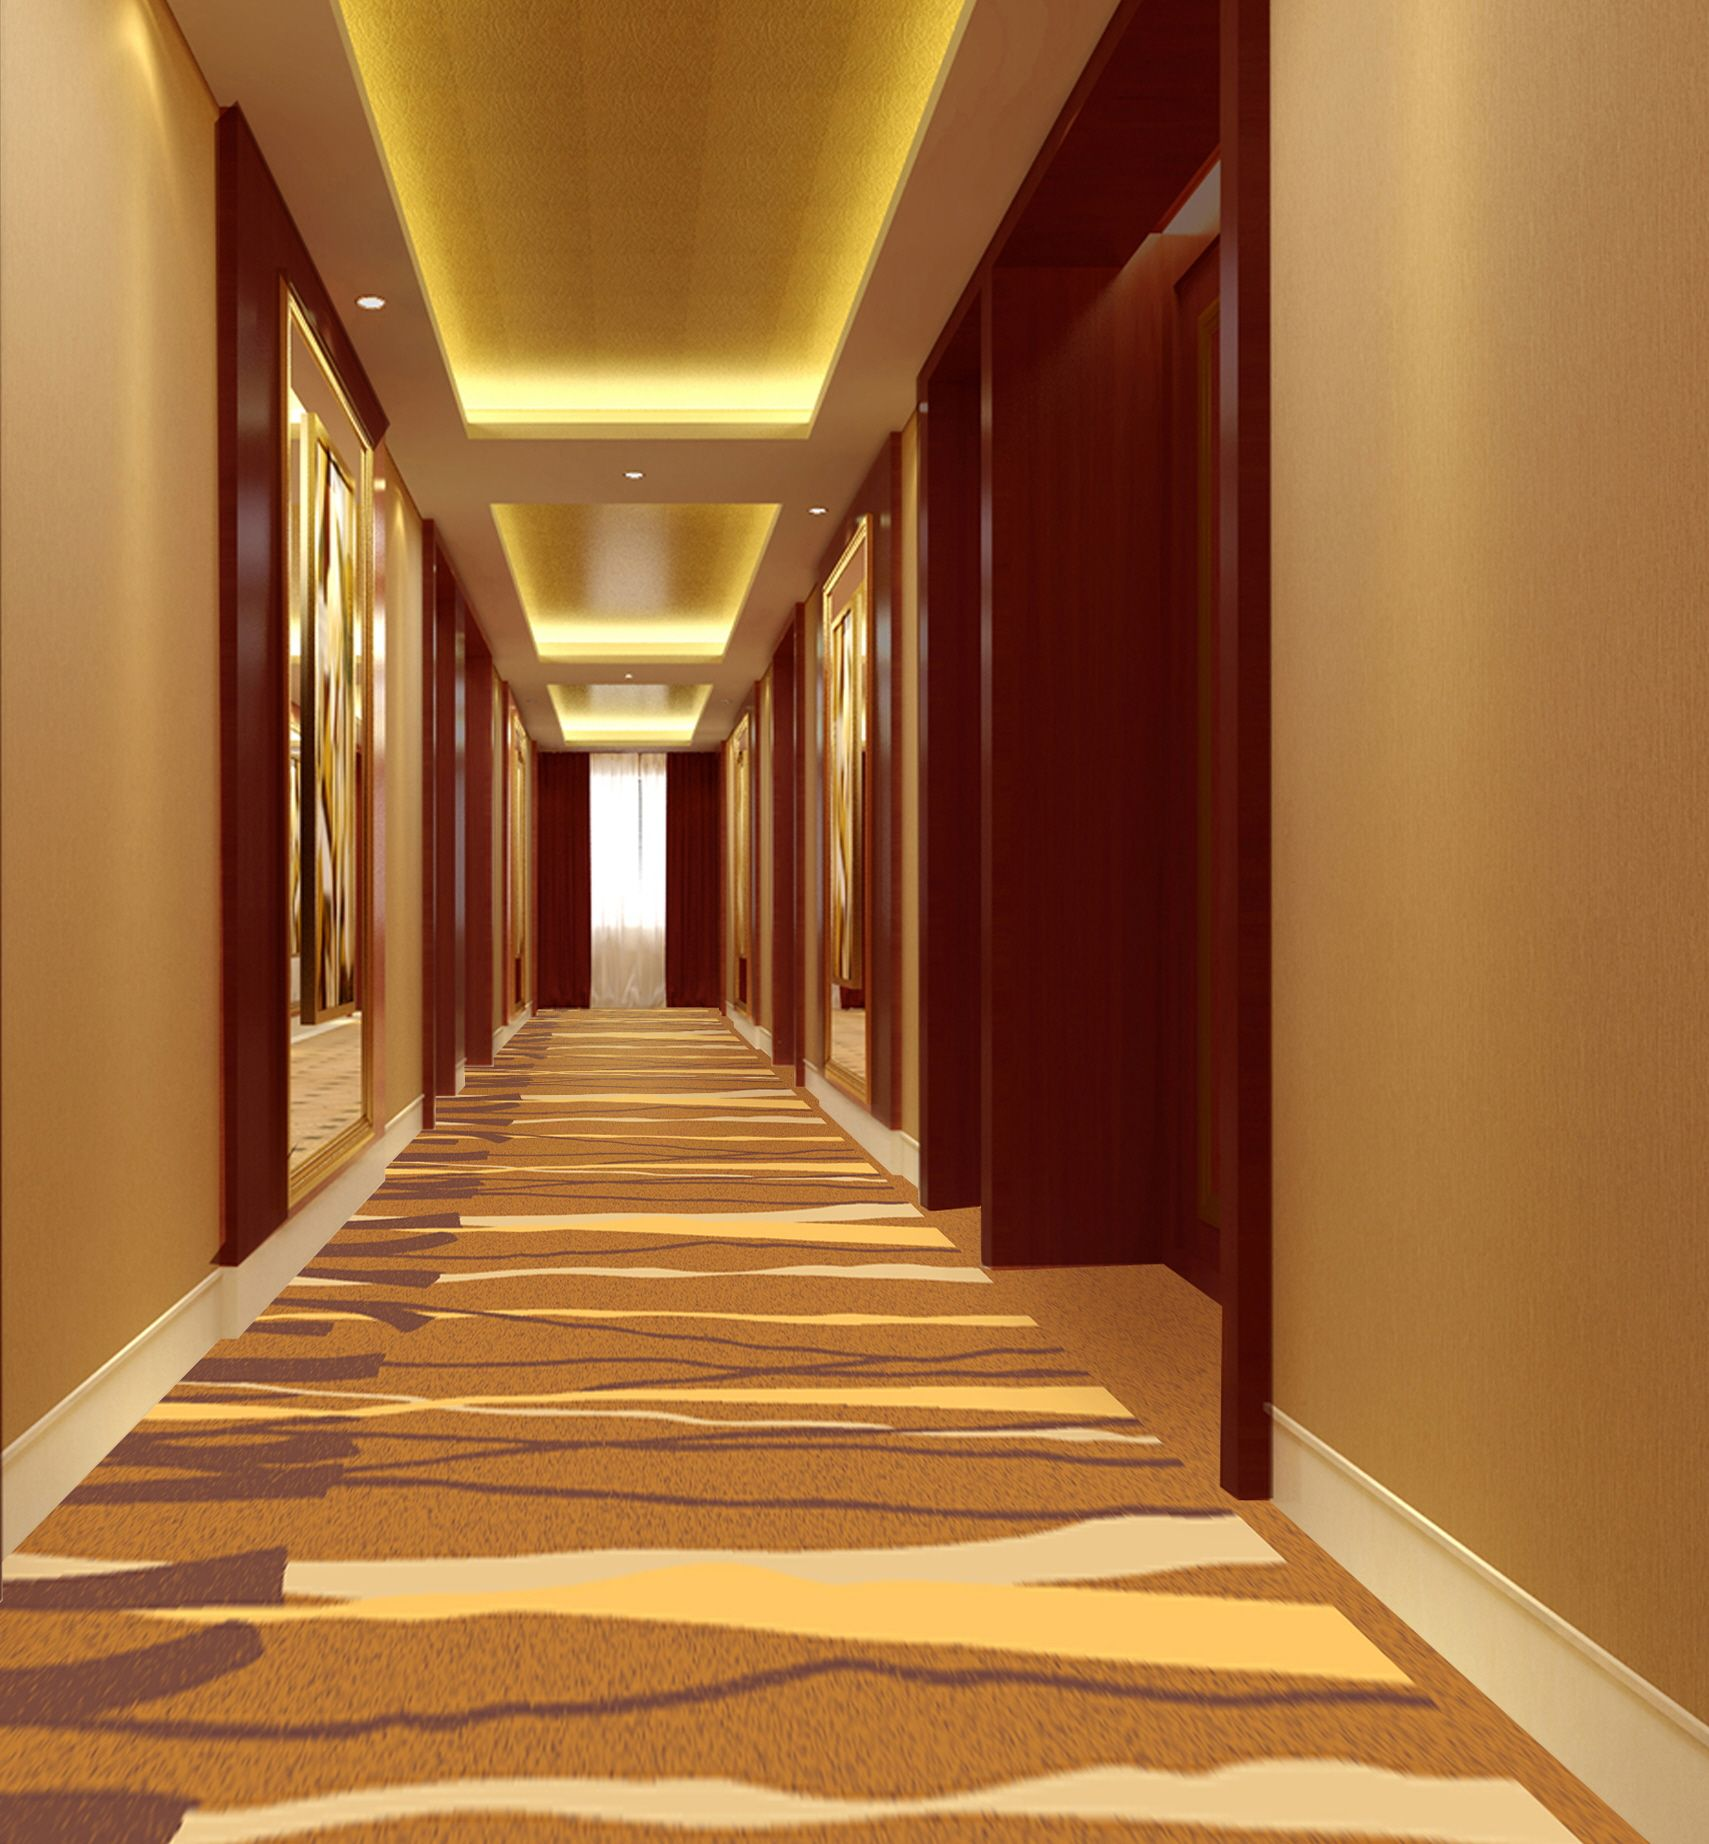 Corridor Designing Apart From All These And Decor Things